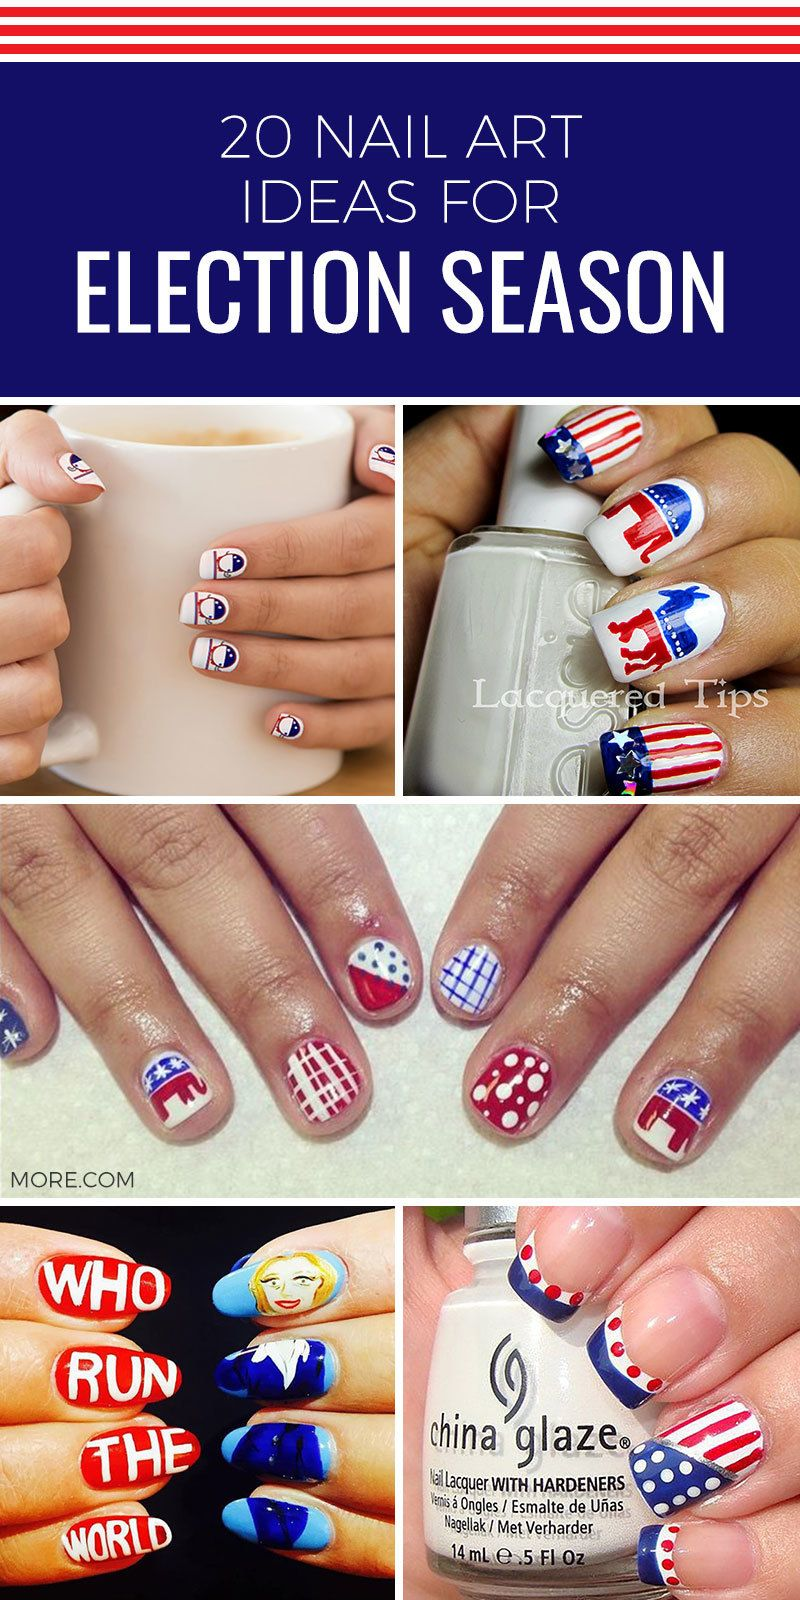 Donald Trump Nails Hillary Clinton Even Bernie Sanders Nail Art What More Could Someone Who Love Manicures And Politics Want